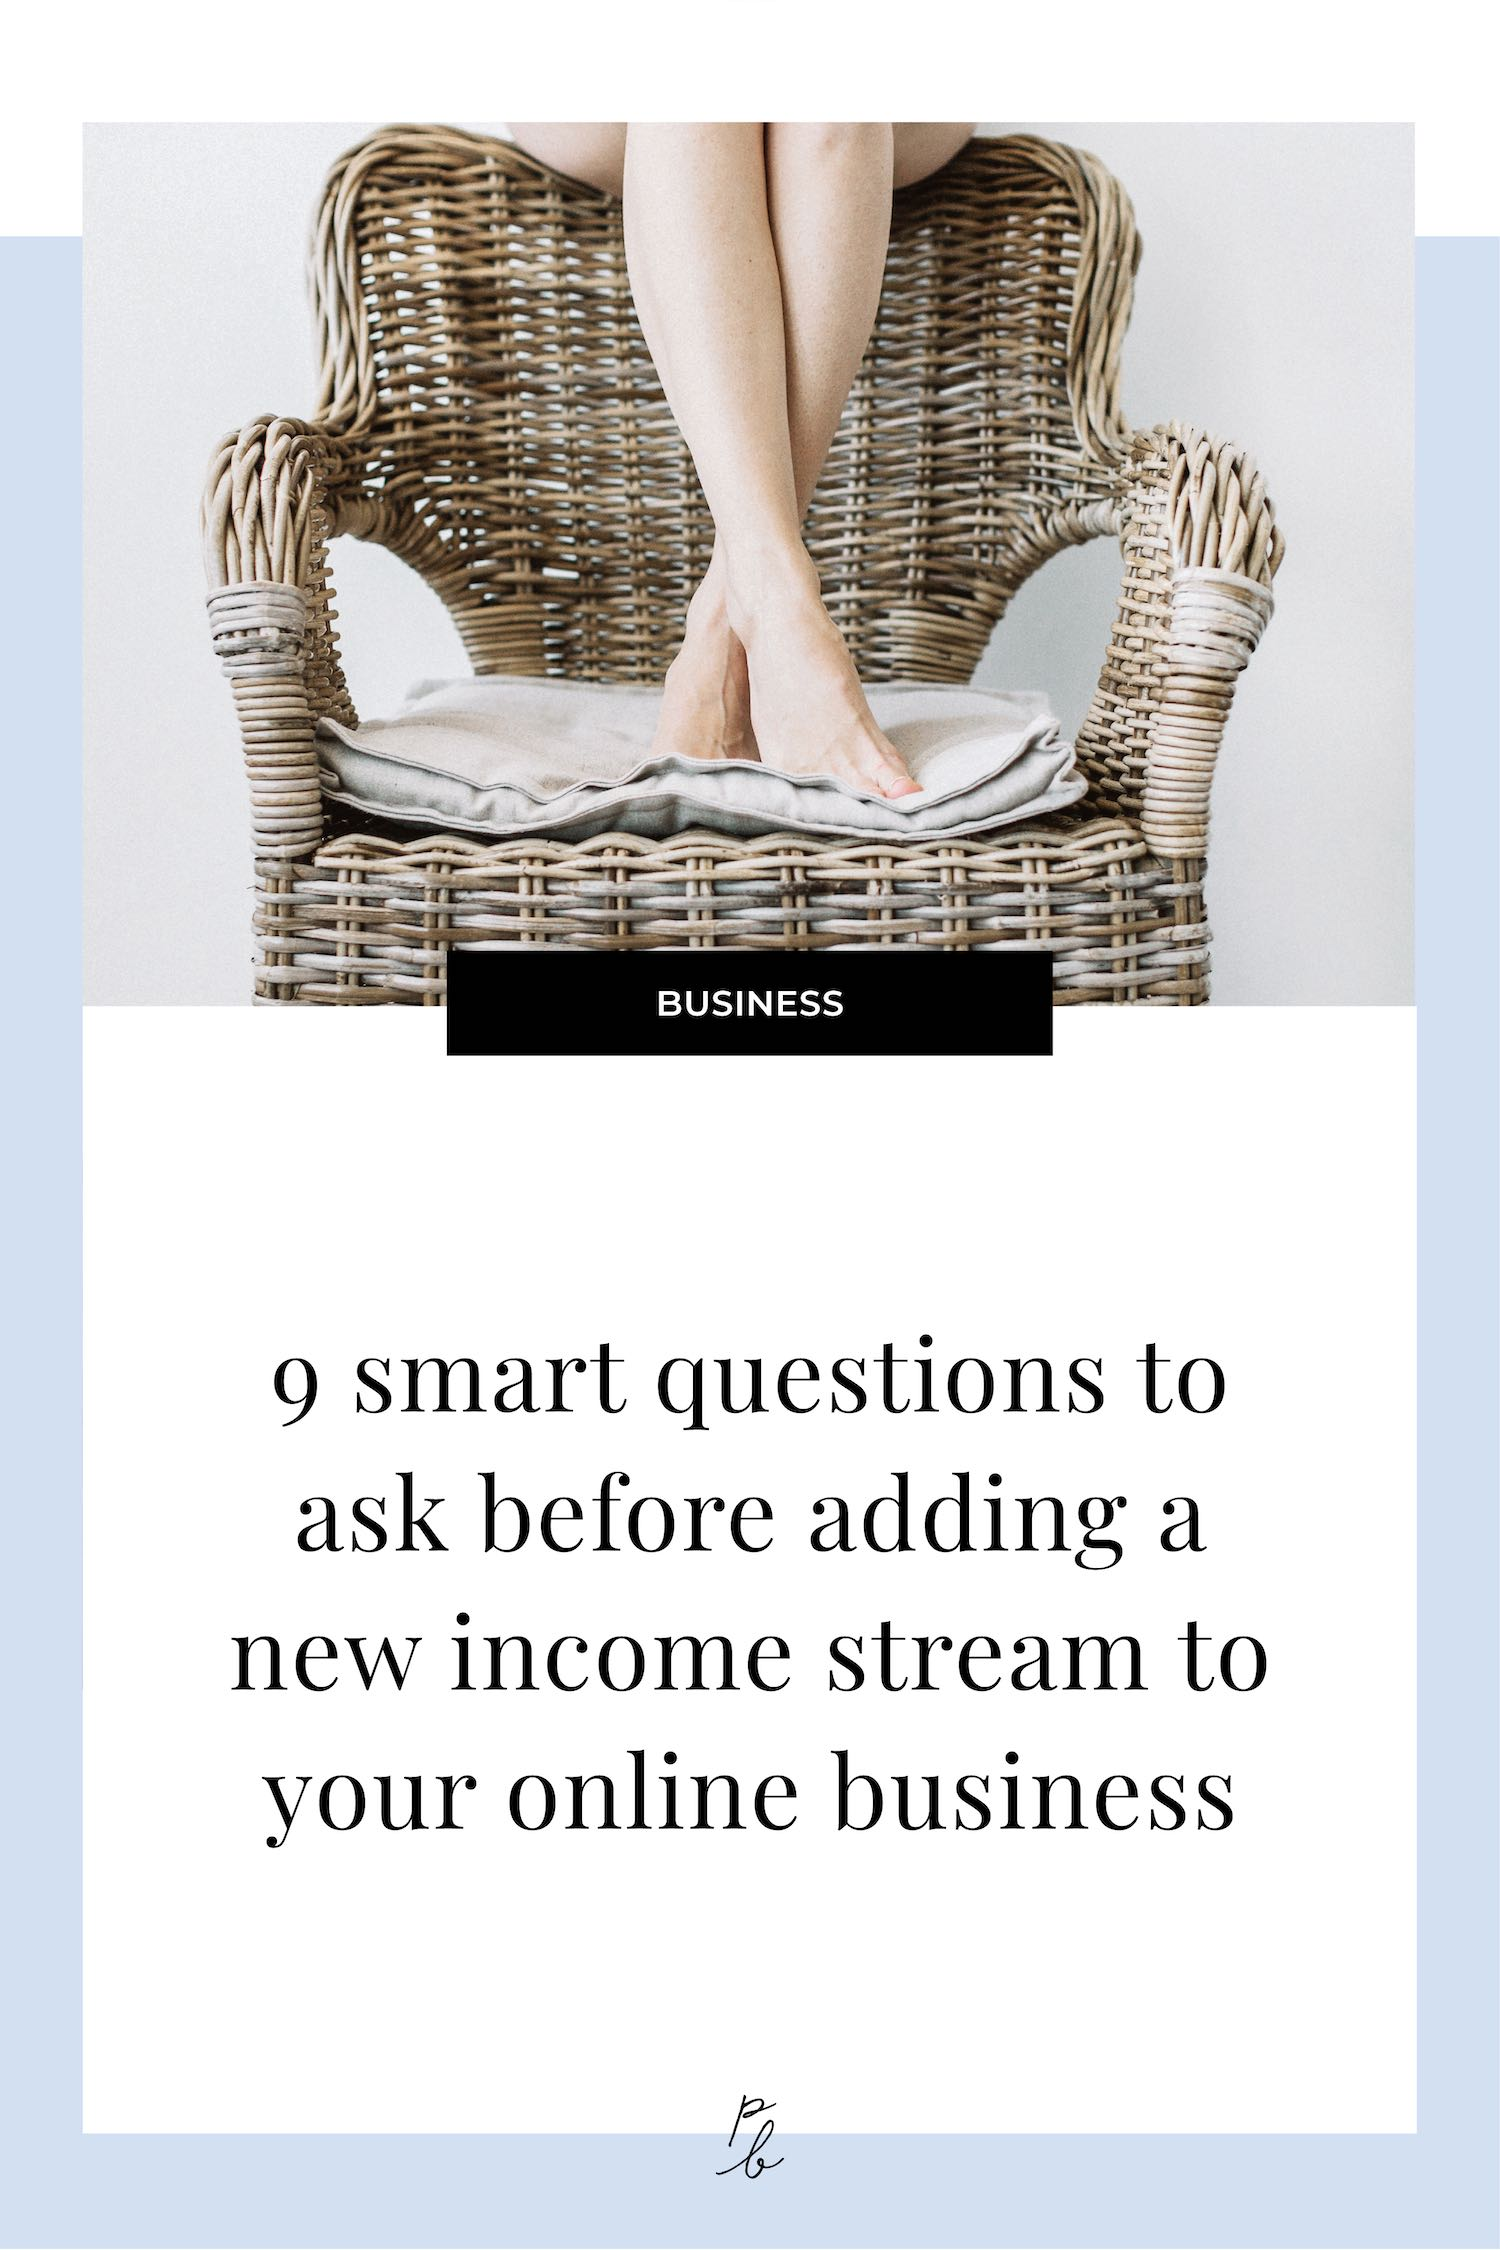 9 smart questions to ask before adding a new income stream to your online business.jpg